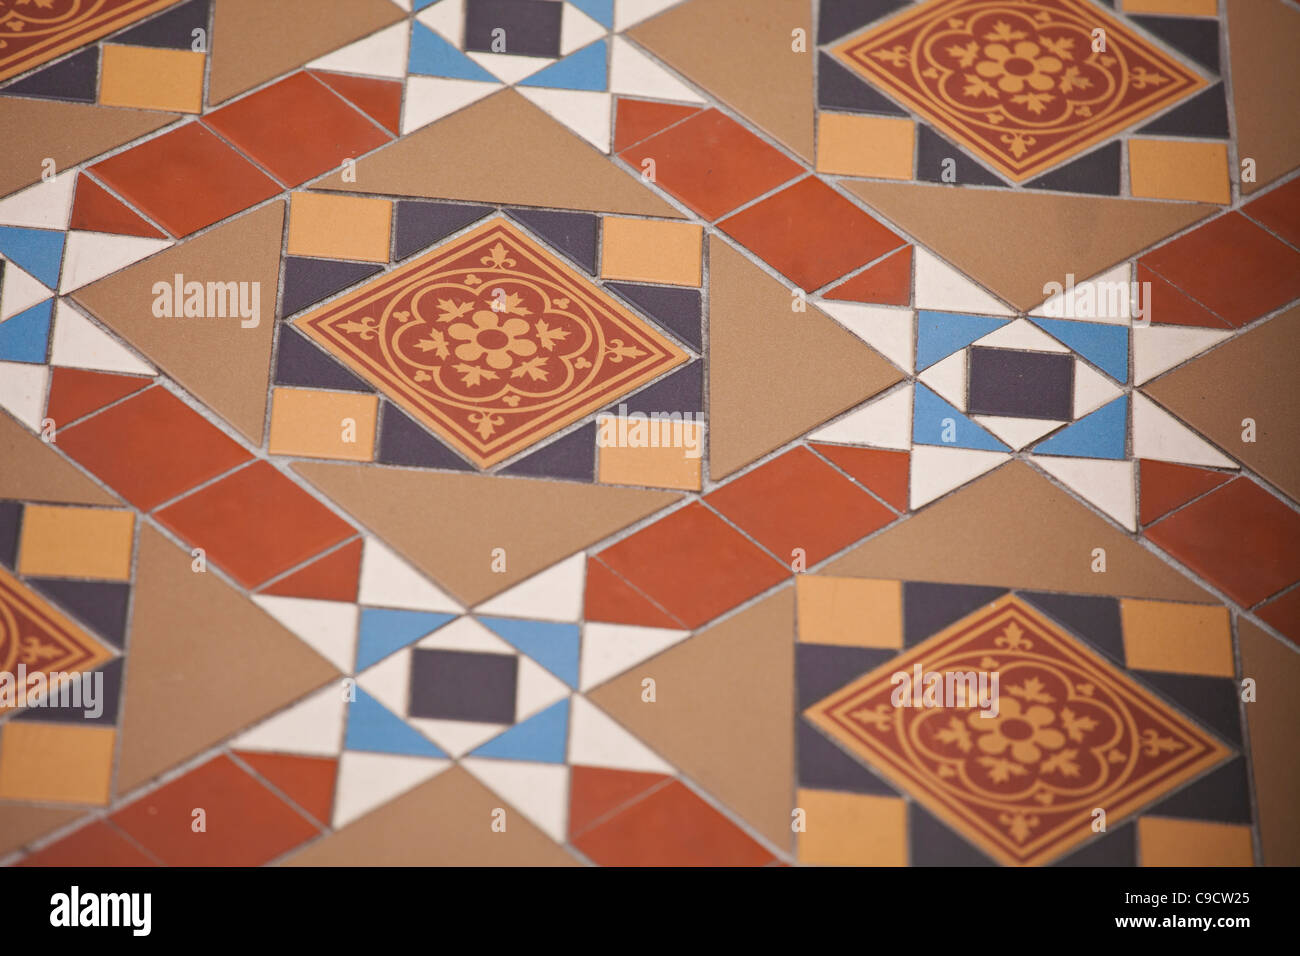 Melbourne historical patterned clay path floor tiles seen in both private and public houses thought the city. - Stock Image